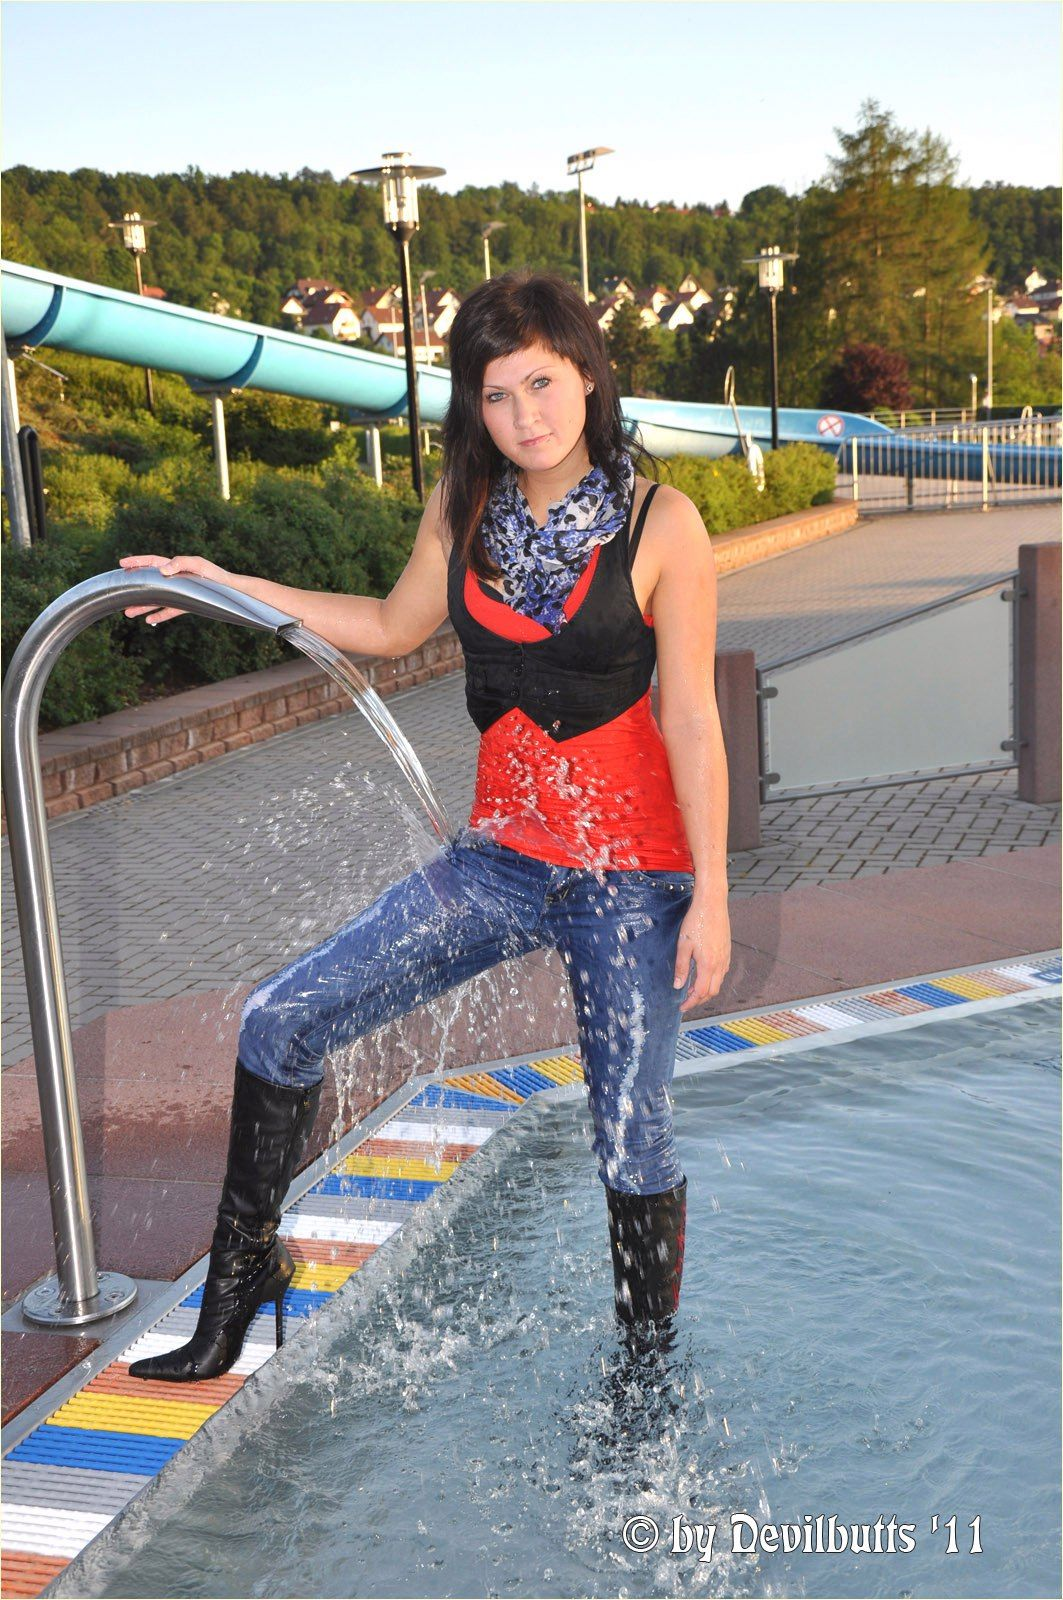 Conny Black Leather Tall Boots Wet Set 23 2011 Pool